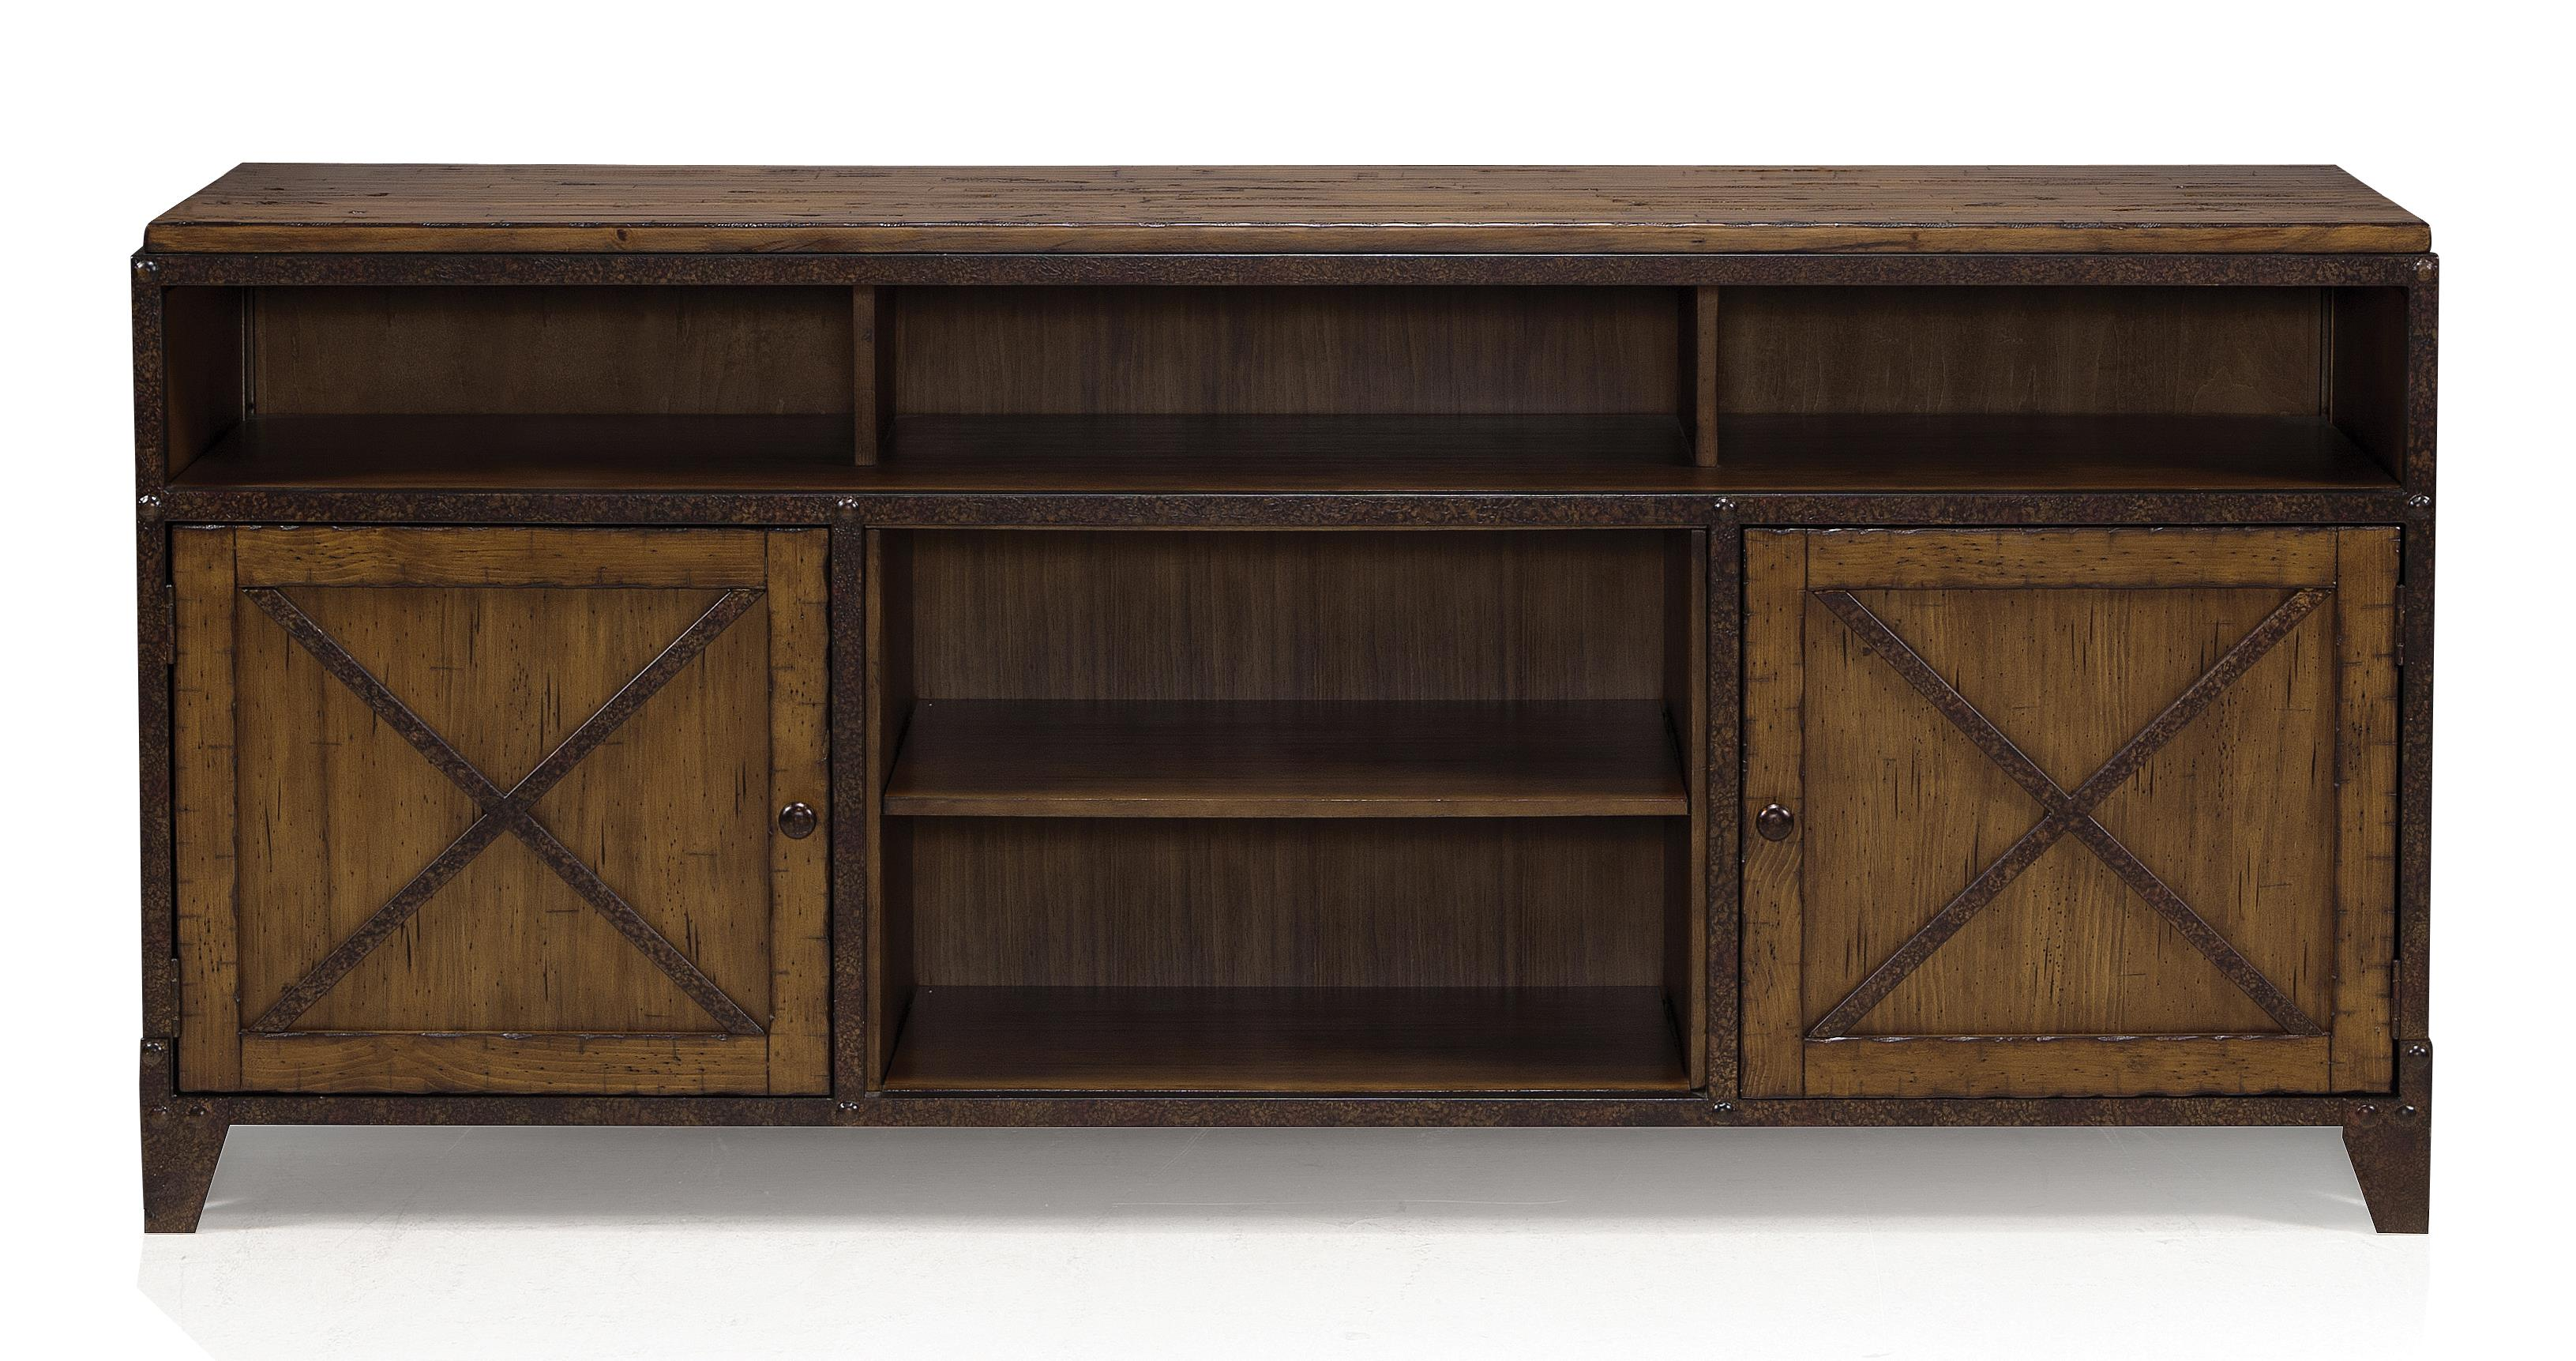 Rustic TV Console Table With Wire Management And Adjustable Shelves